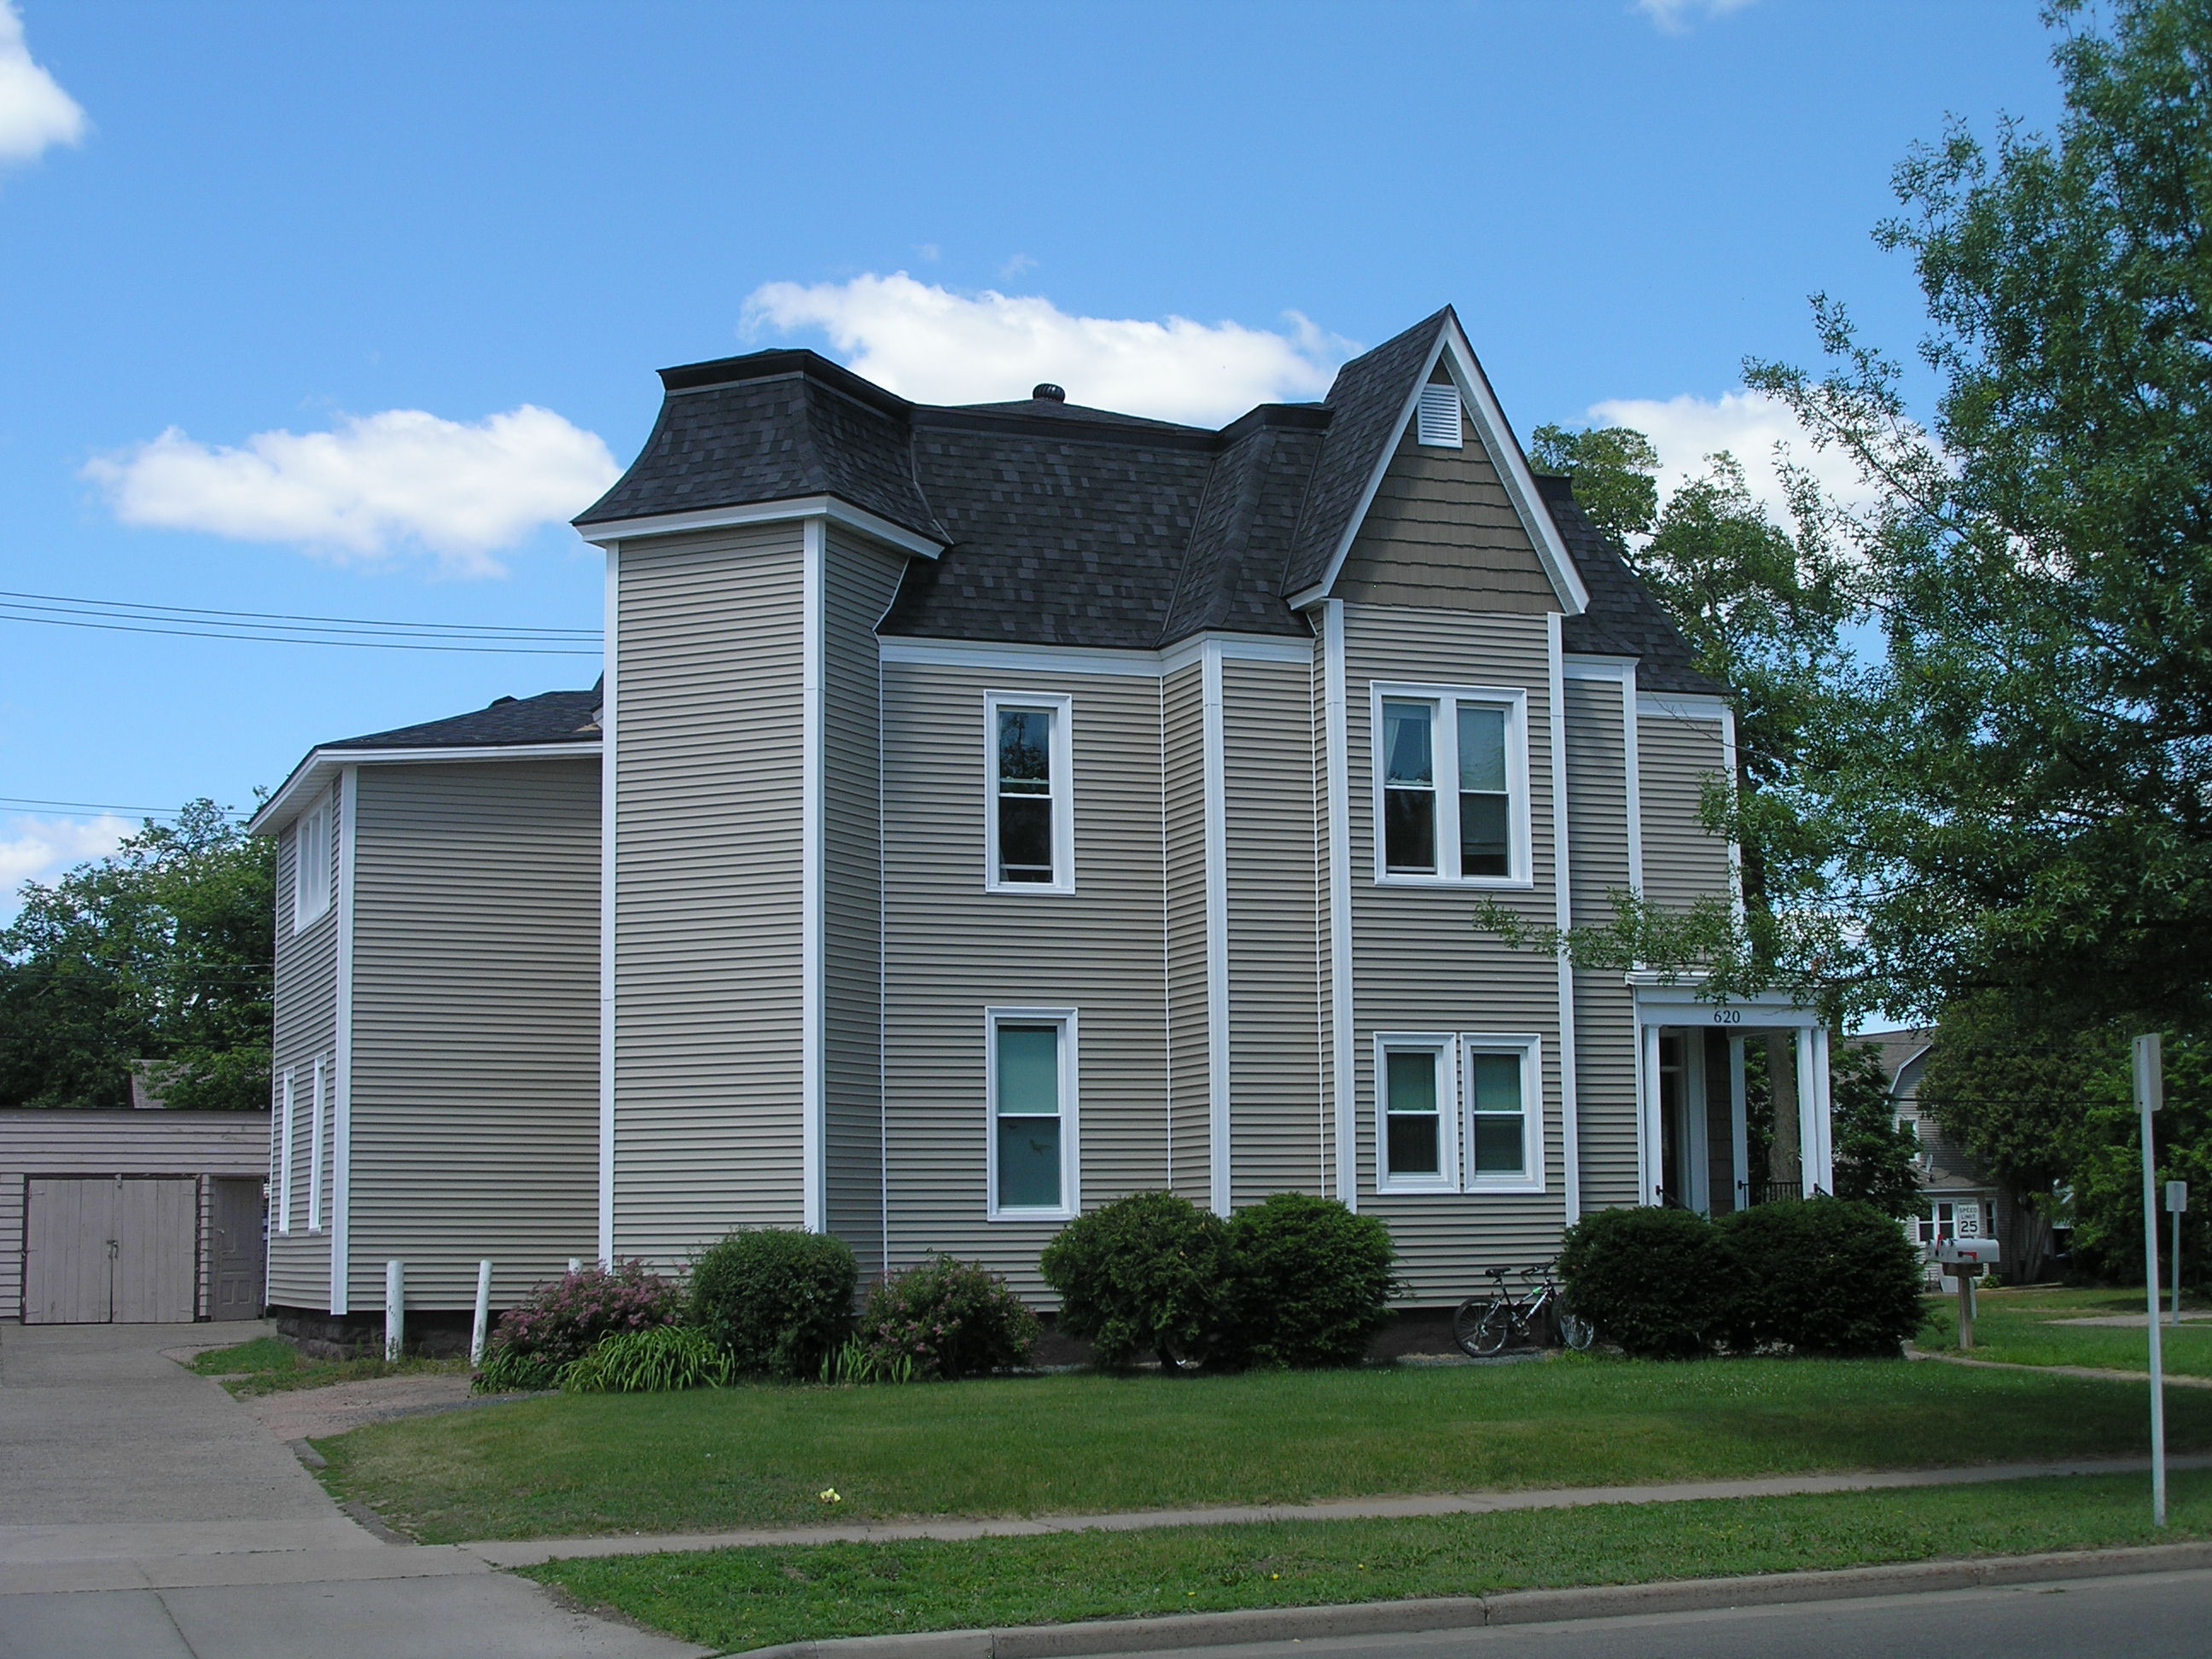 1 bedroom apartments for rent in eau claire wi 28 images extended stay rental in charming 1 1 bedroom apartments in eau claire wi